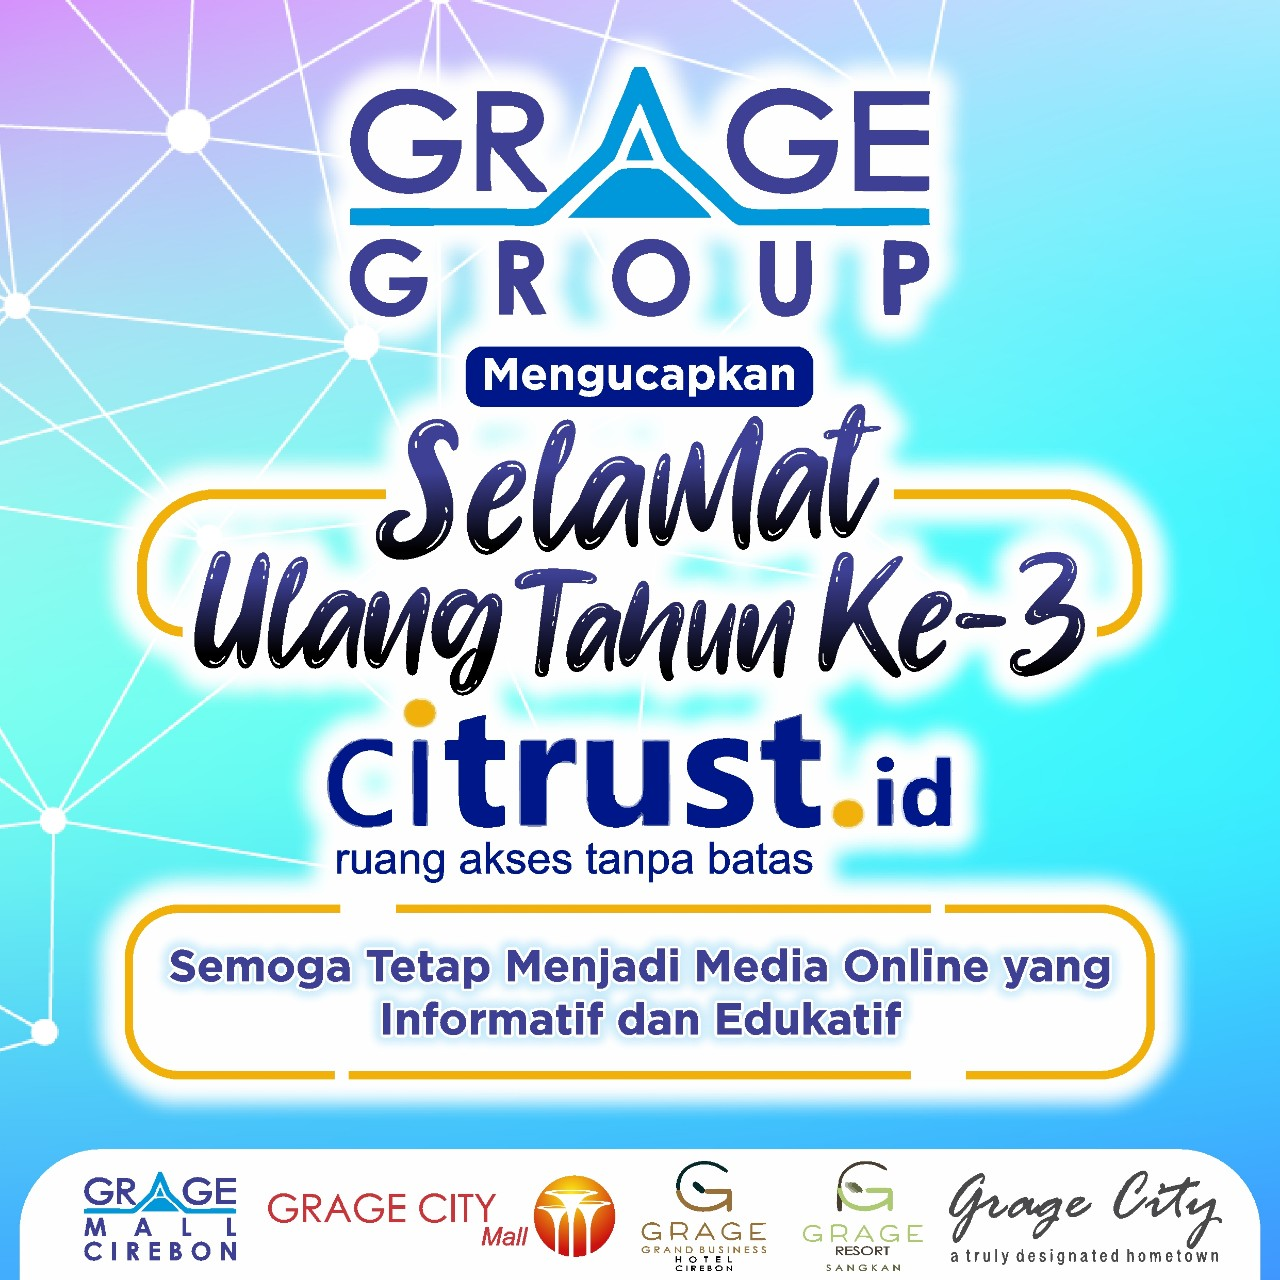 Iklan Ucapan HUT Citrust Grage Group